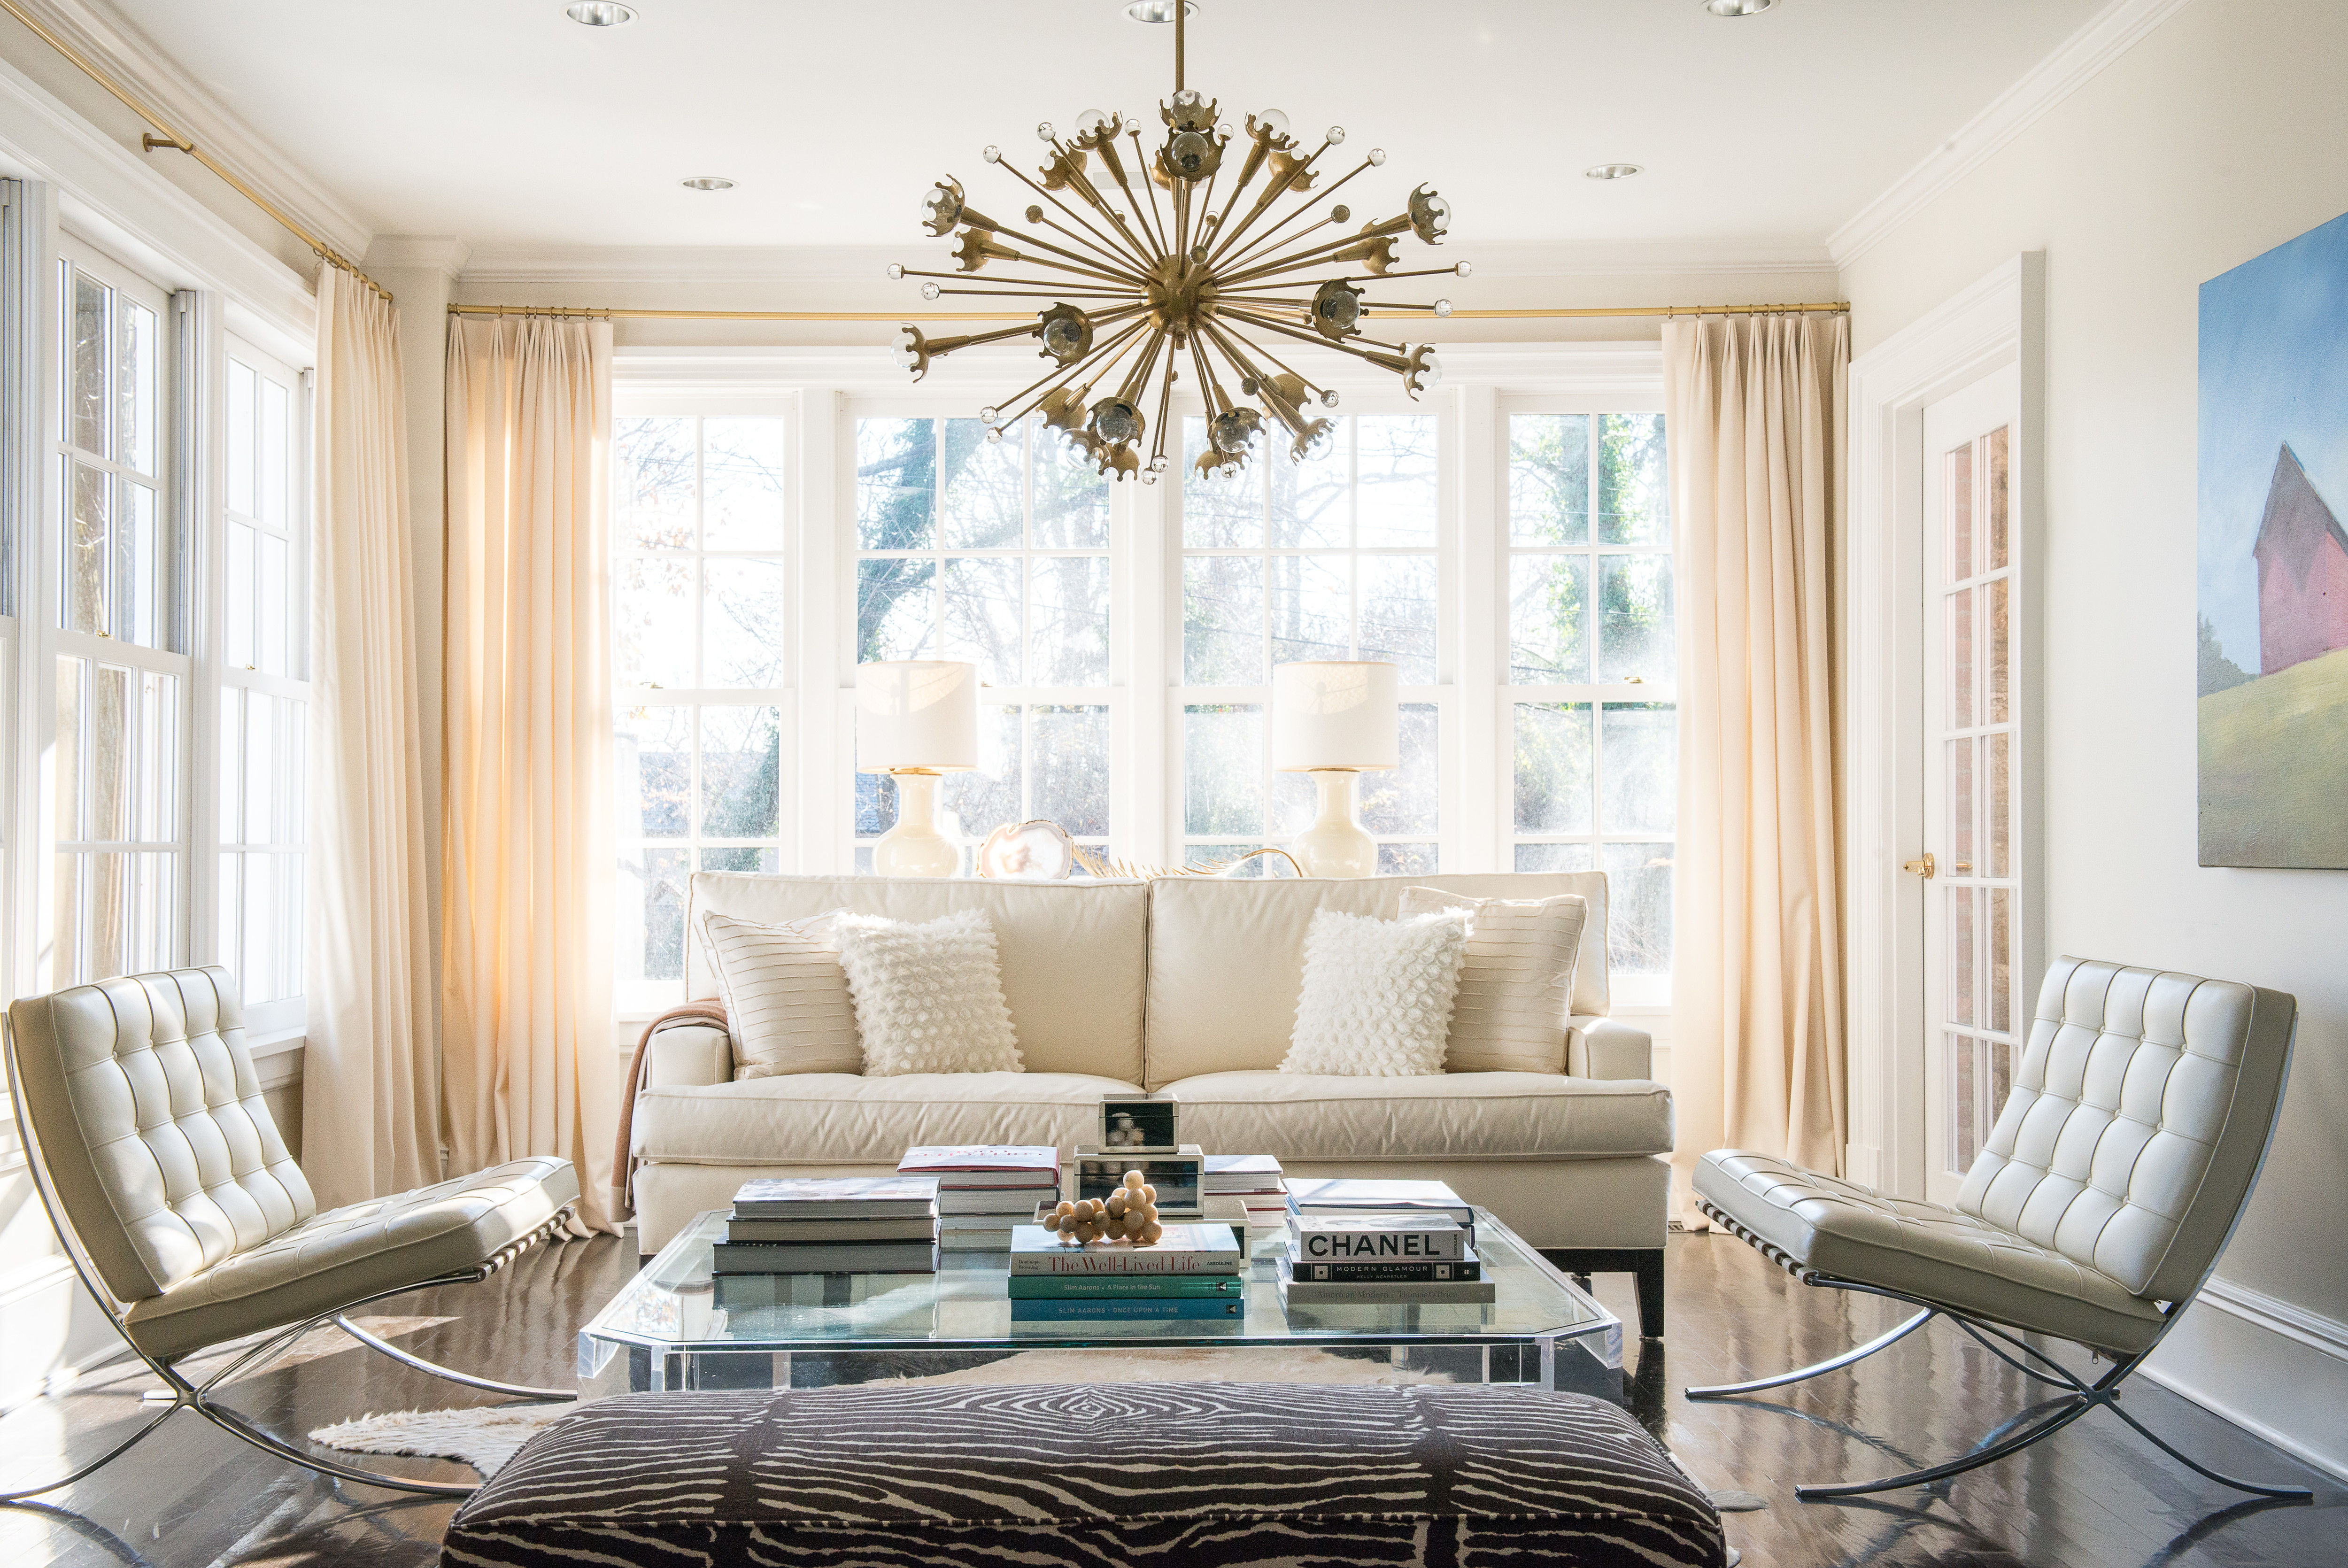 The spacious seating area is inviting and is anchored with a hide rug, lucite coffee table, and stacked art books.